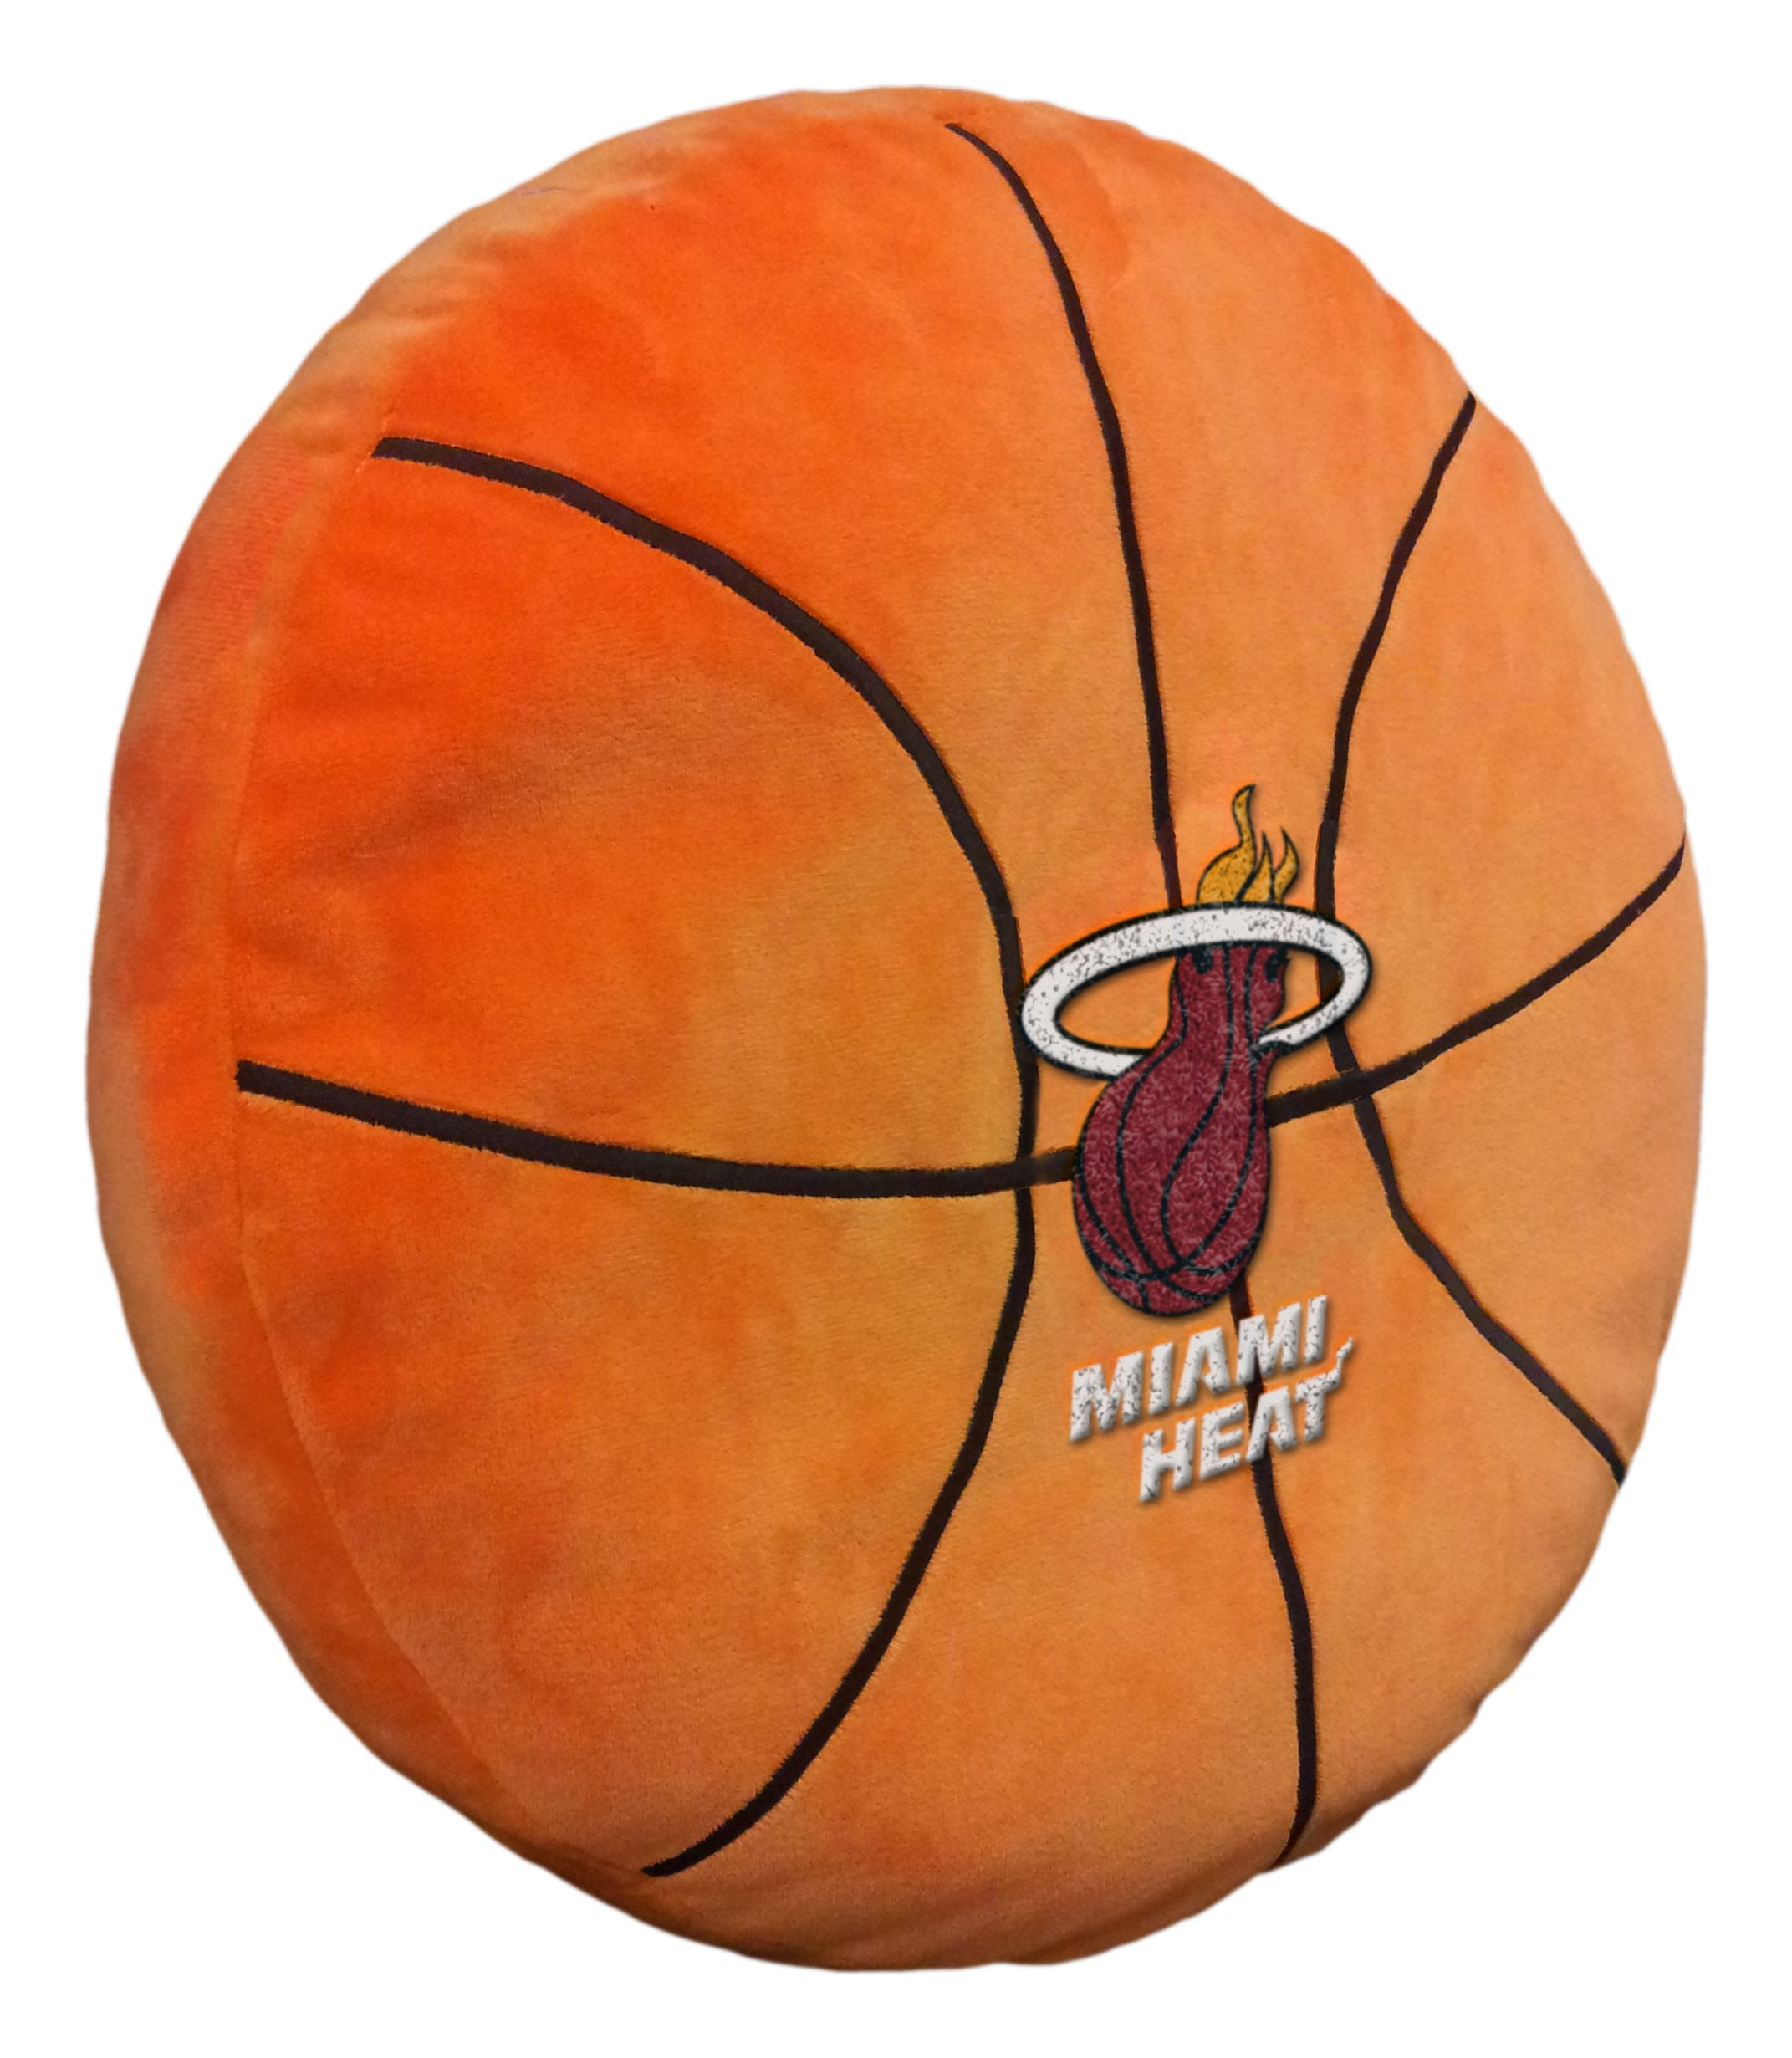 Officially Licensed NBA Miami Heat ''3D'' Basketball Shaped Pillow, Orange, 15'' x 15'' x 2'' by The Northwest Company